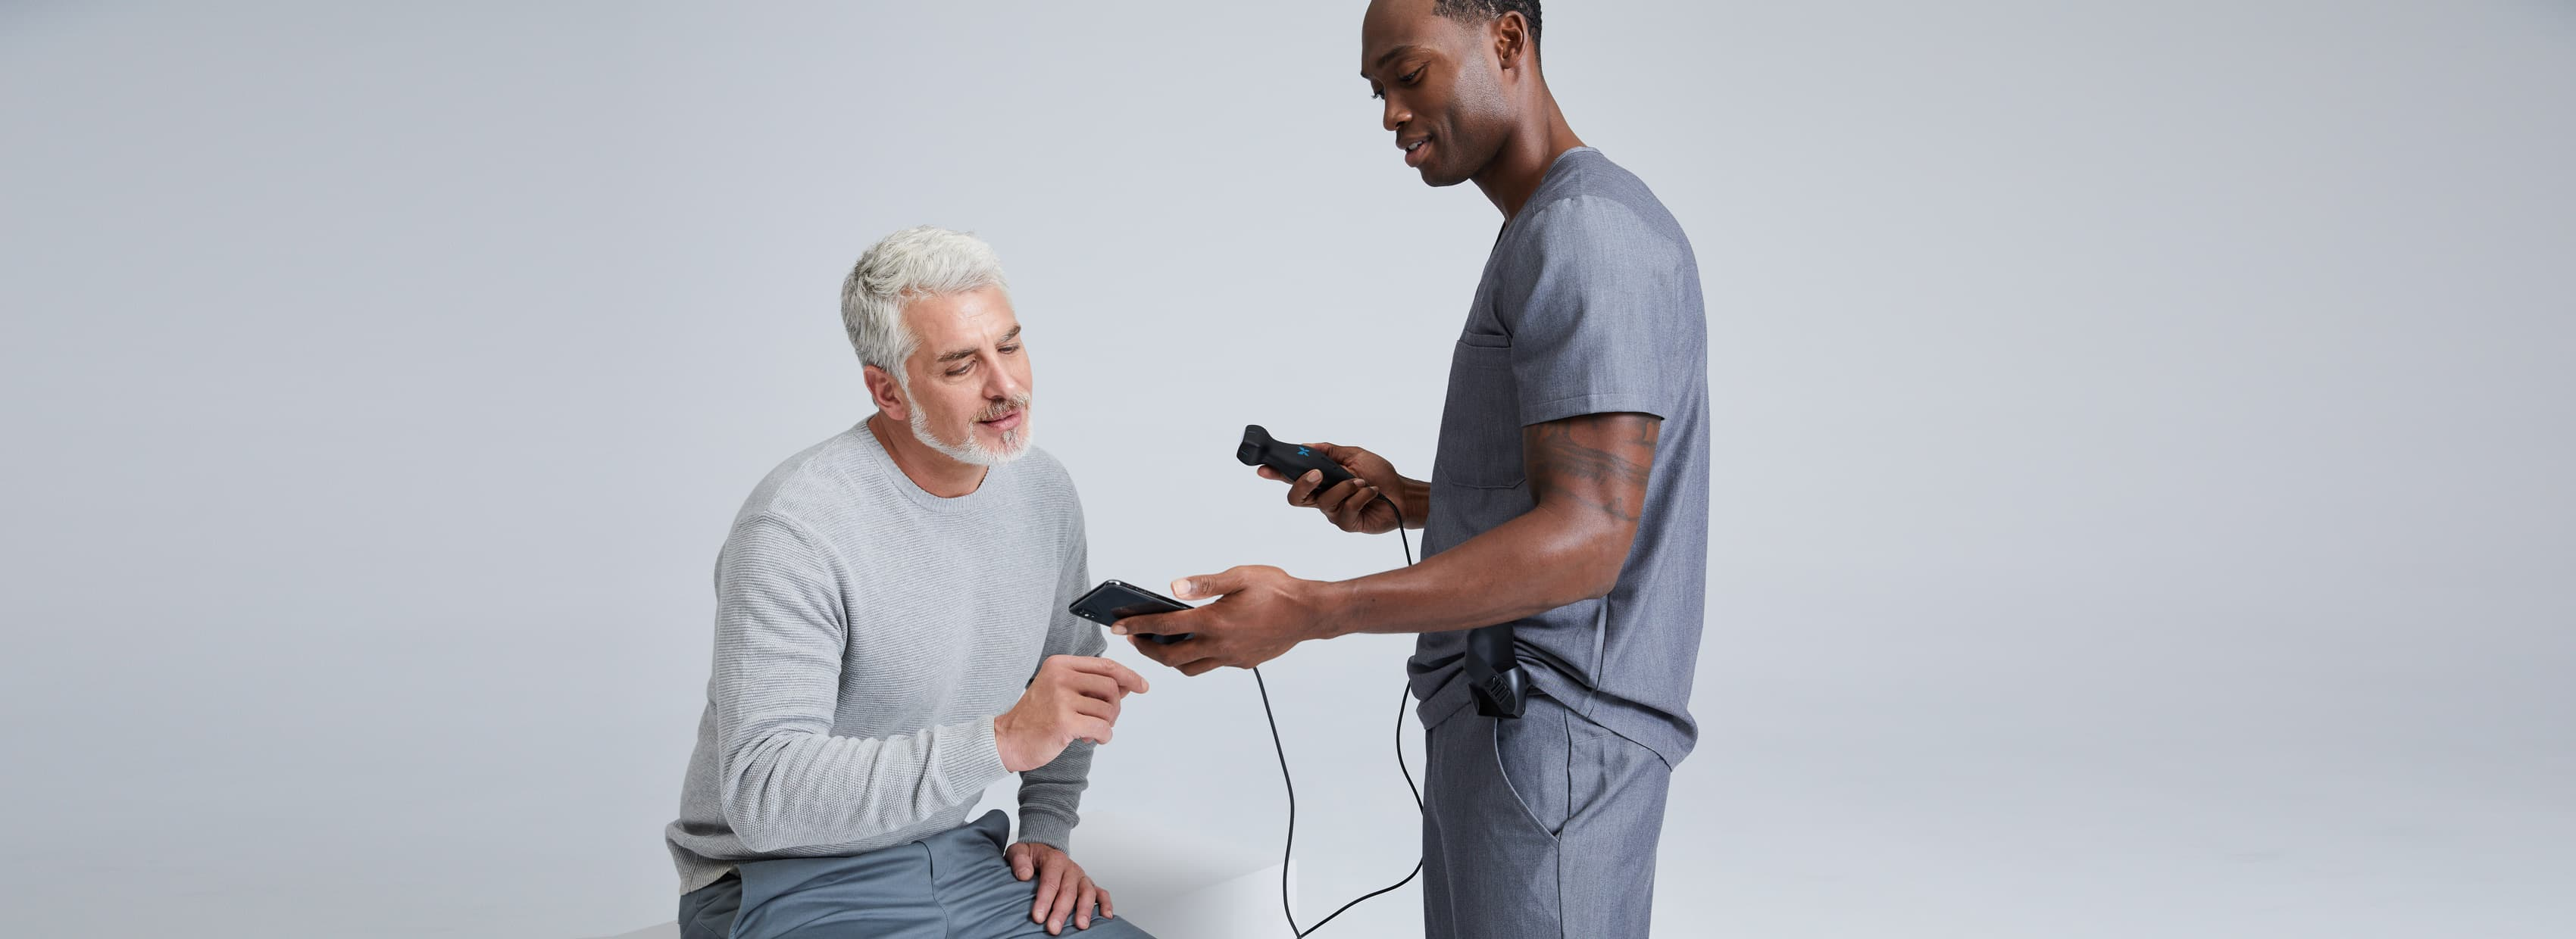 A doctor showing an ultrasound image to a man